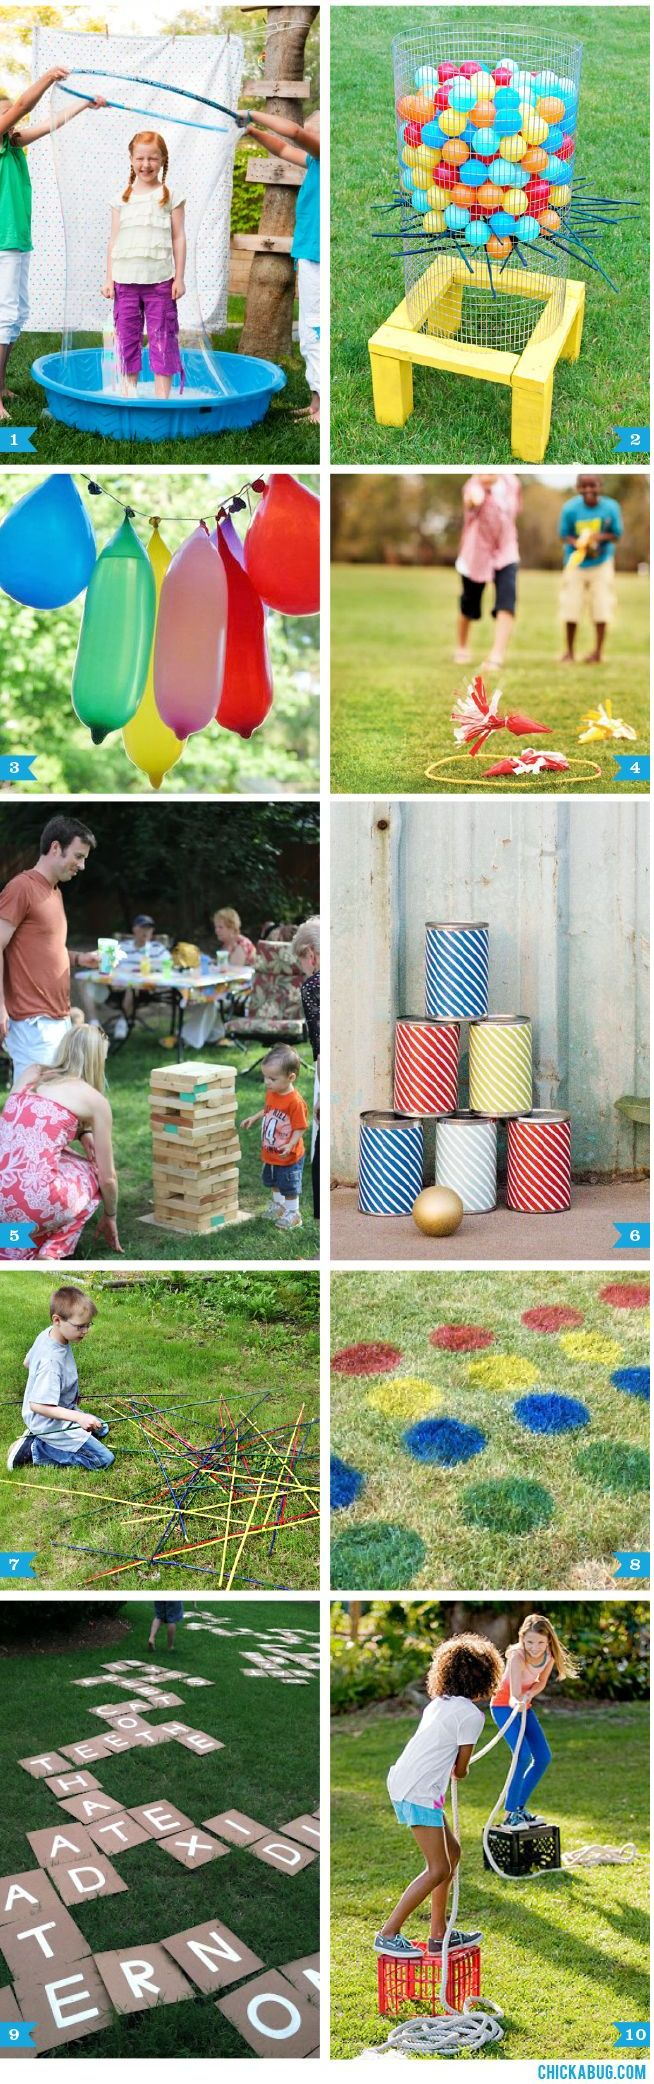 Love the hanging balloons.. I can see a piñata game with some balloons with water and others filled with candy...blindfold then bat away.